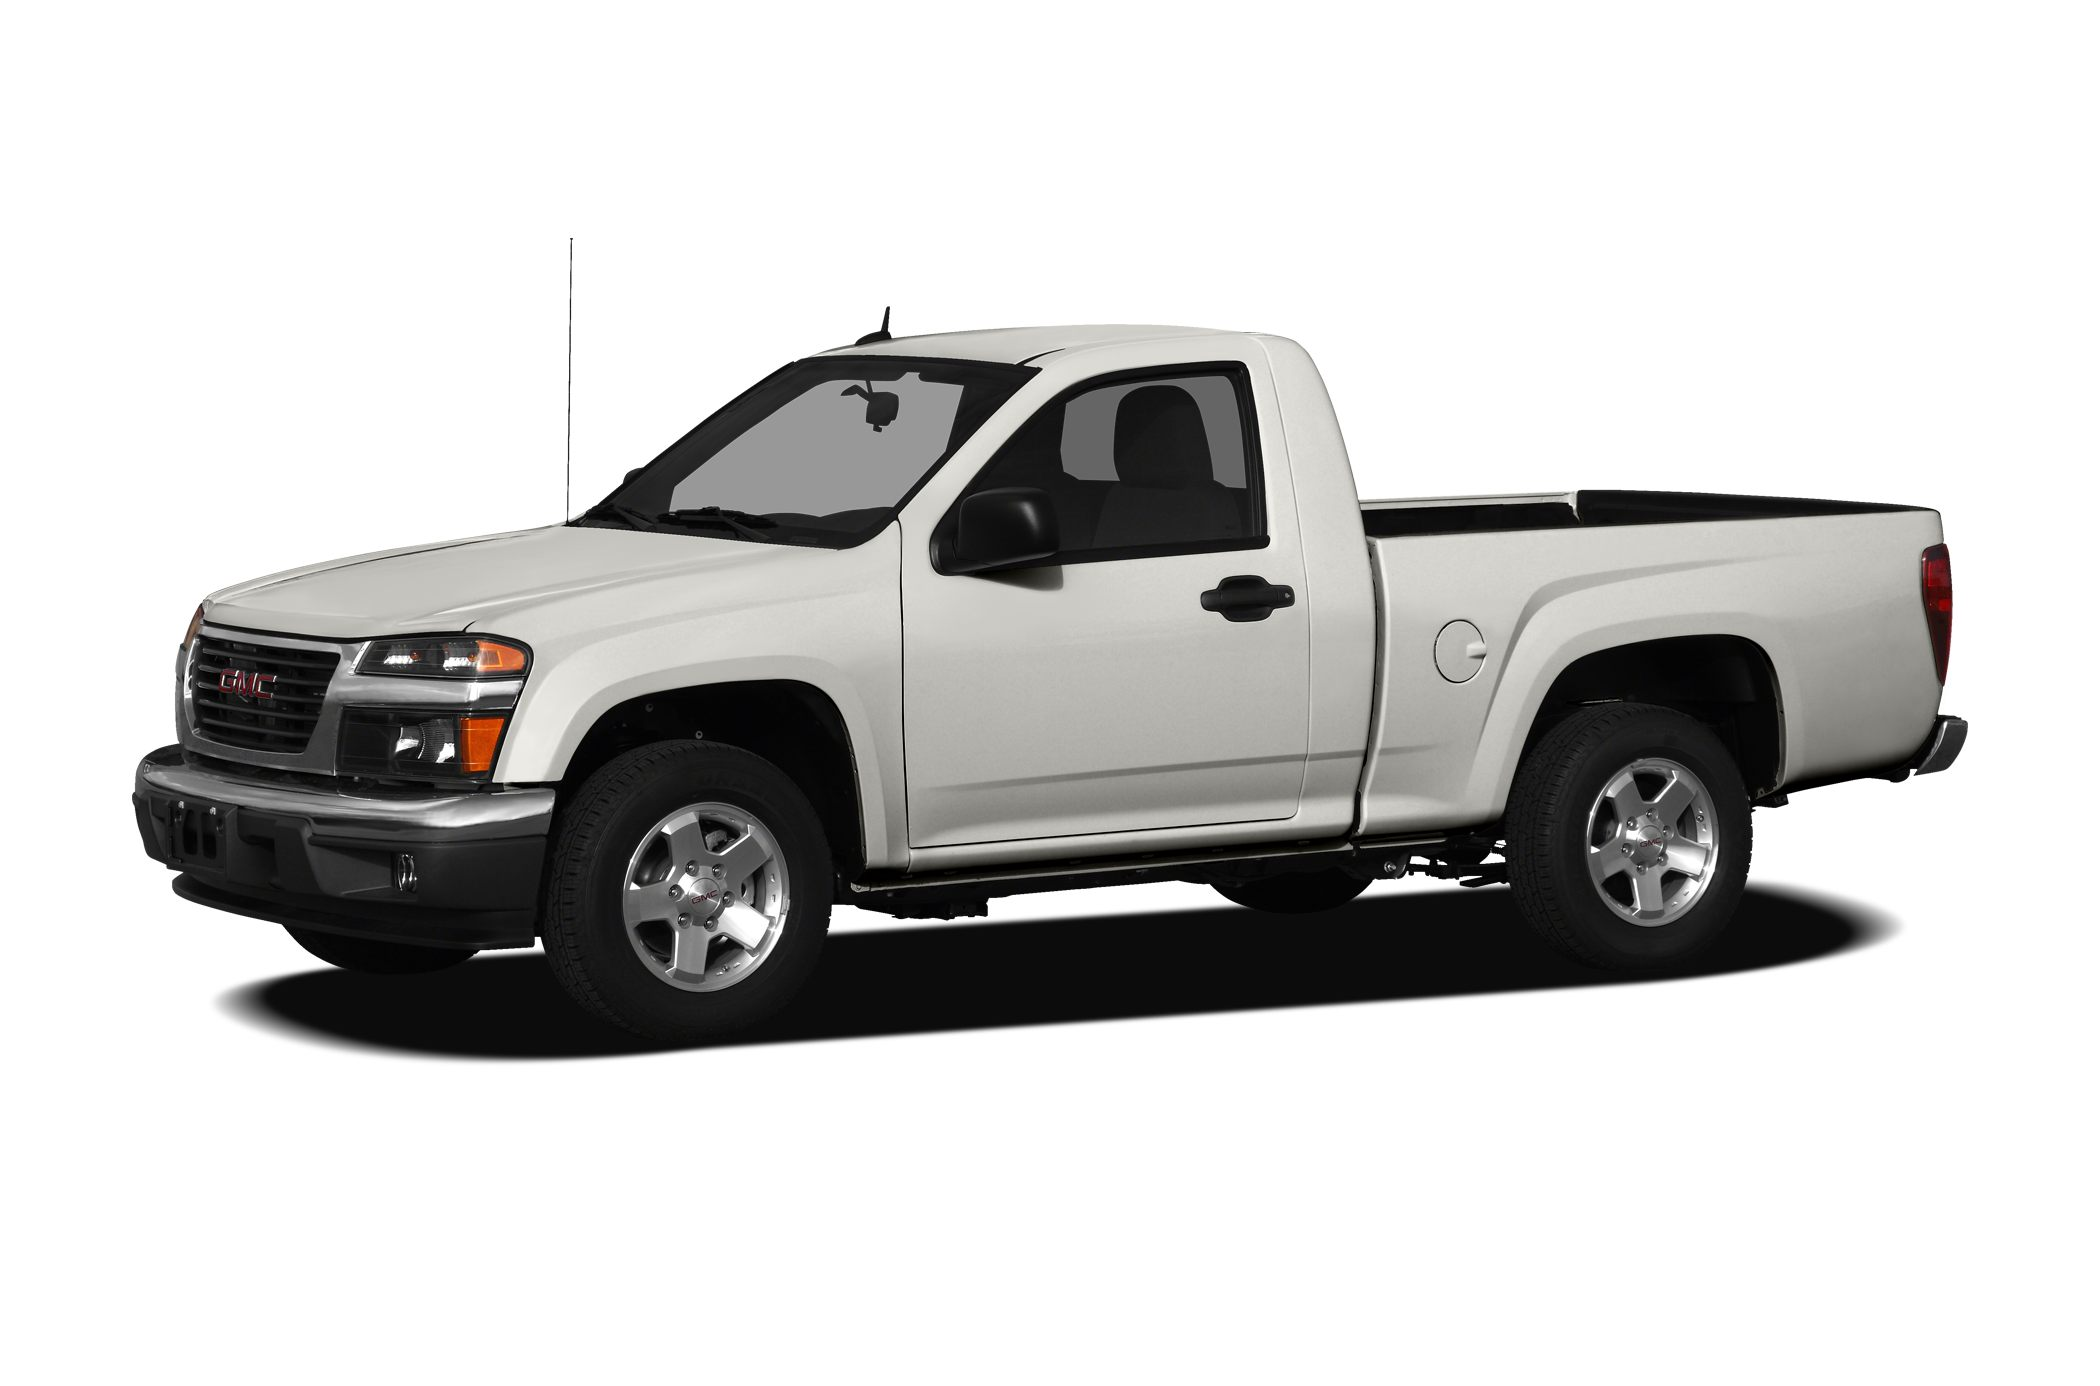 2012 GMC Canyon SLE1 Crew Cab Pickup for sale in Panama City for $23,491 with 45,184 miles.